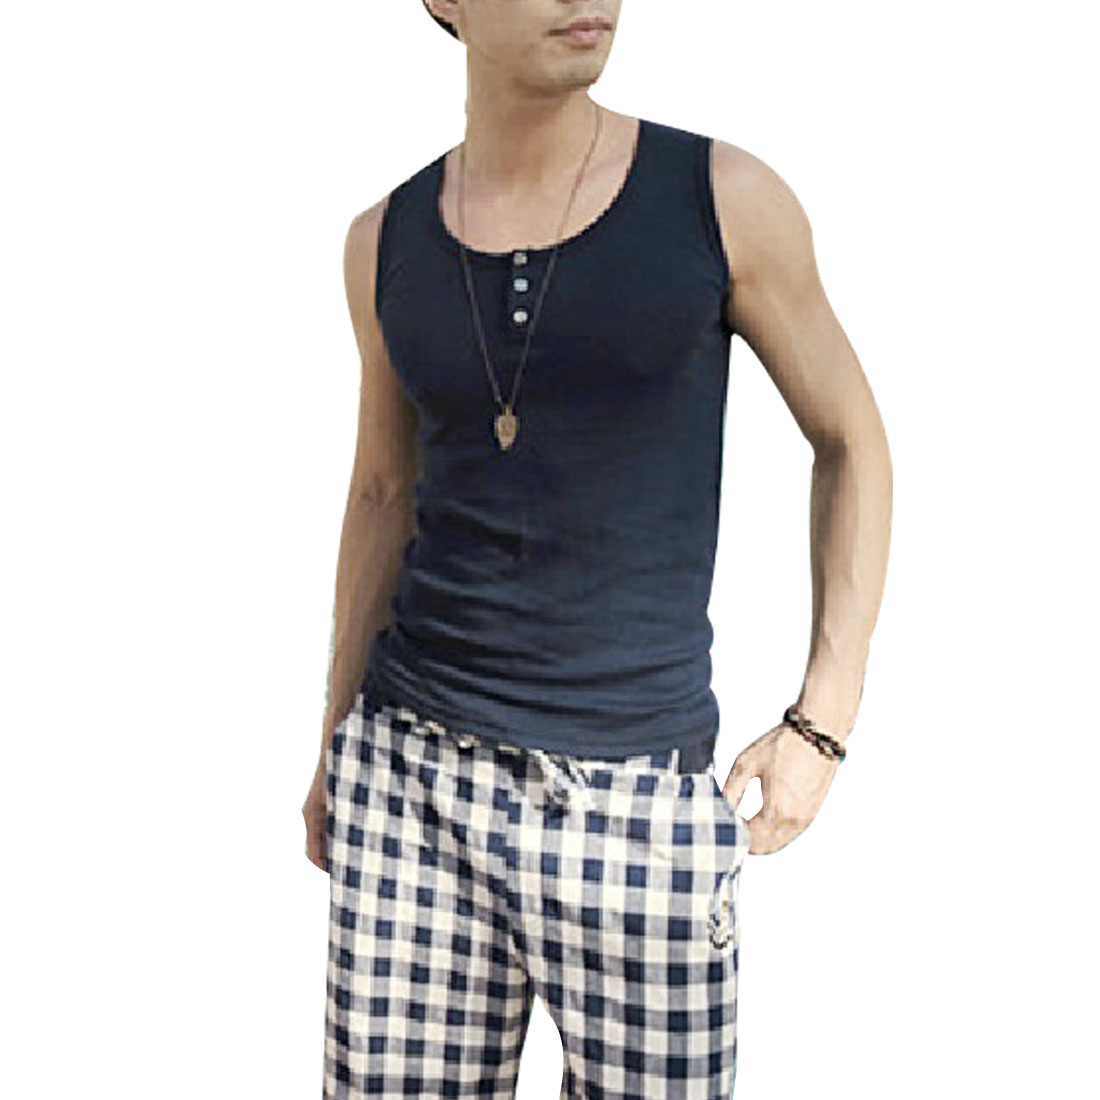 Man New Style Scoop Neck Button Front Decor Ribbed Dark Blue Tank Top S